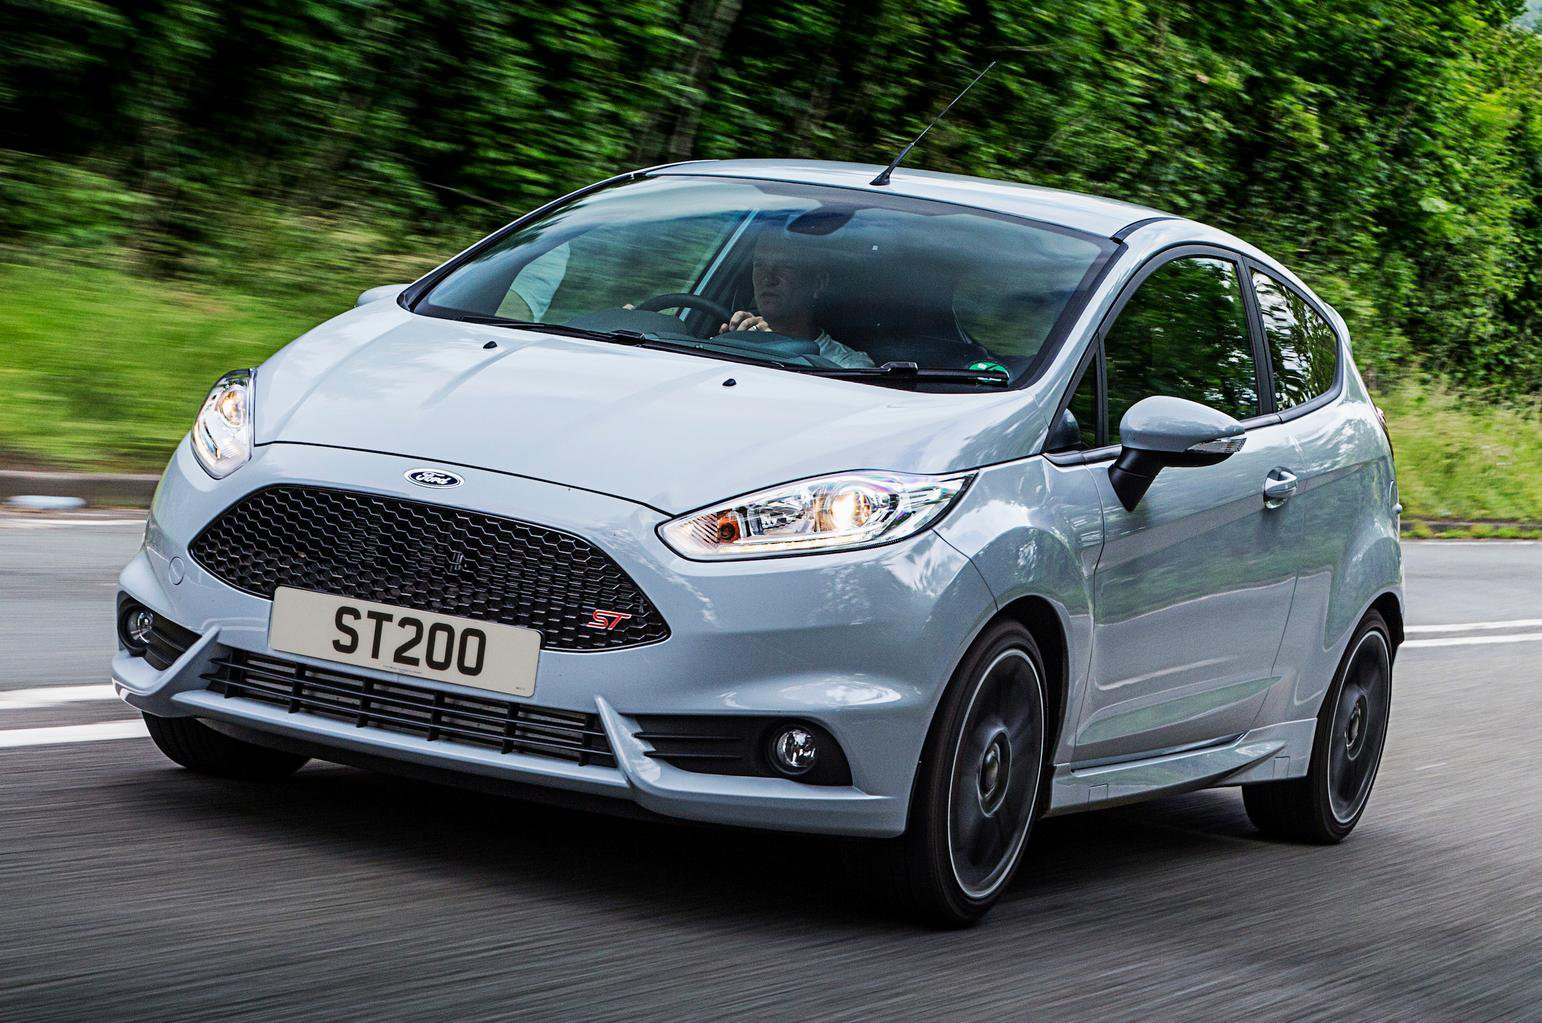 2016 Ford Fiesta ST200 review